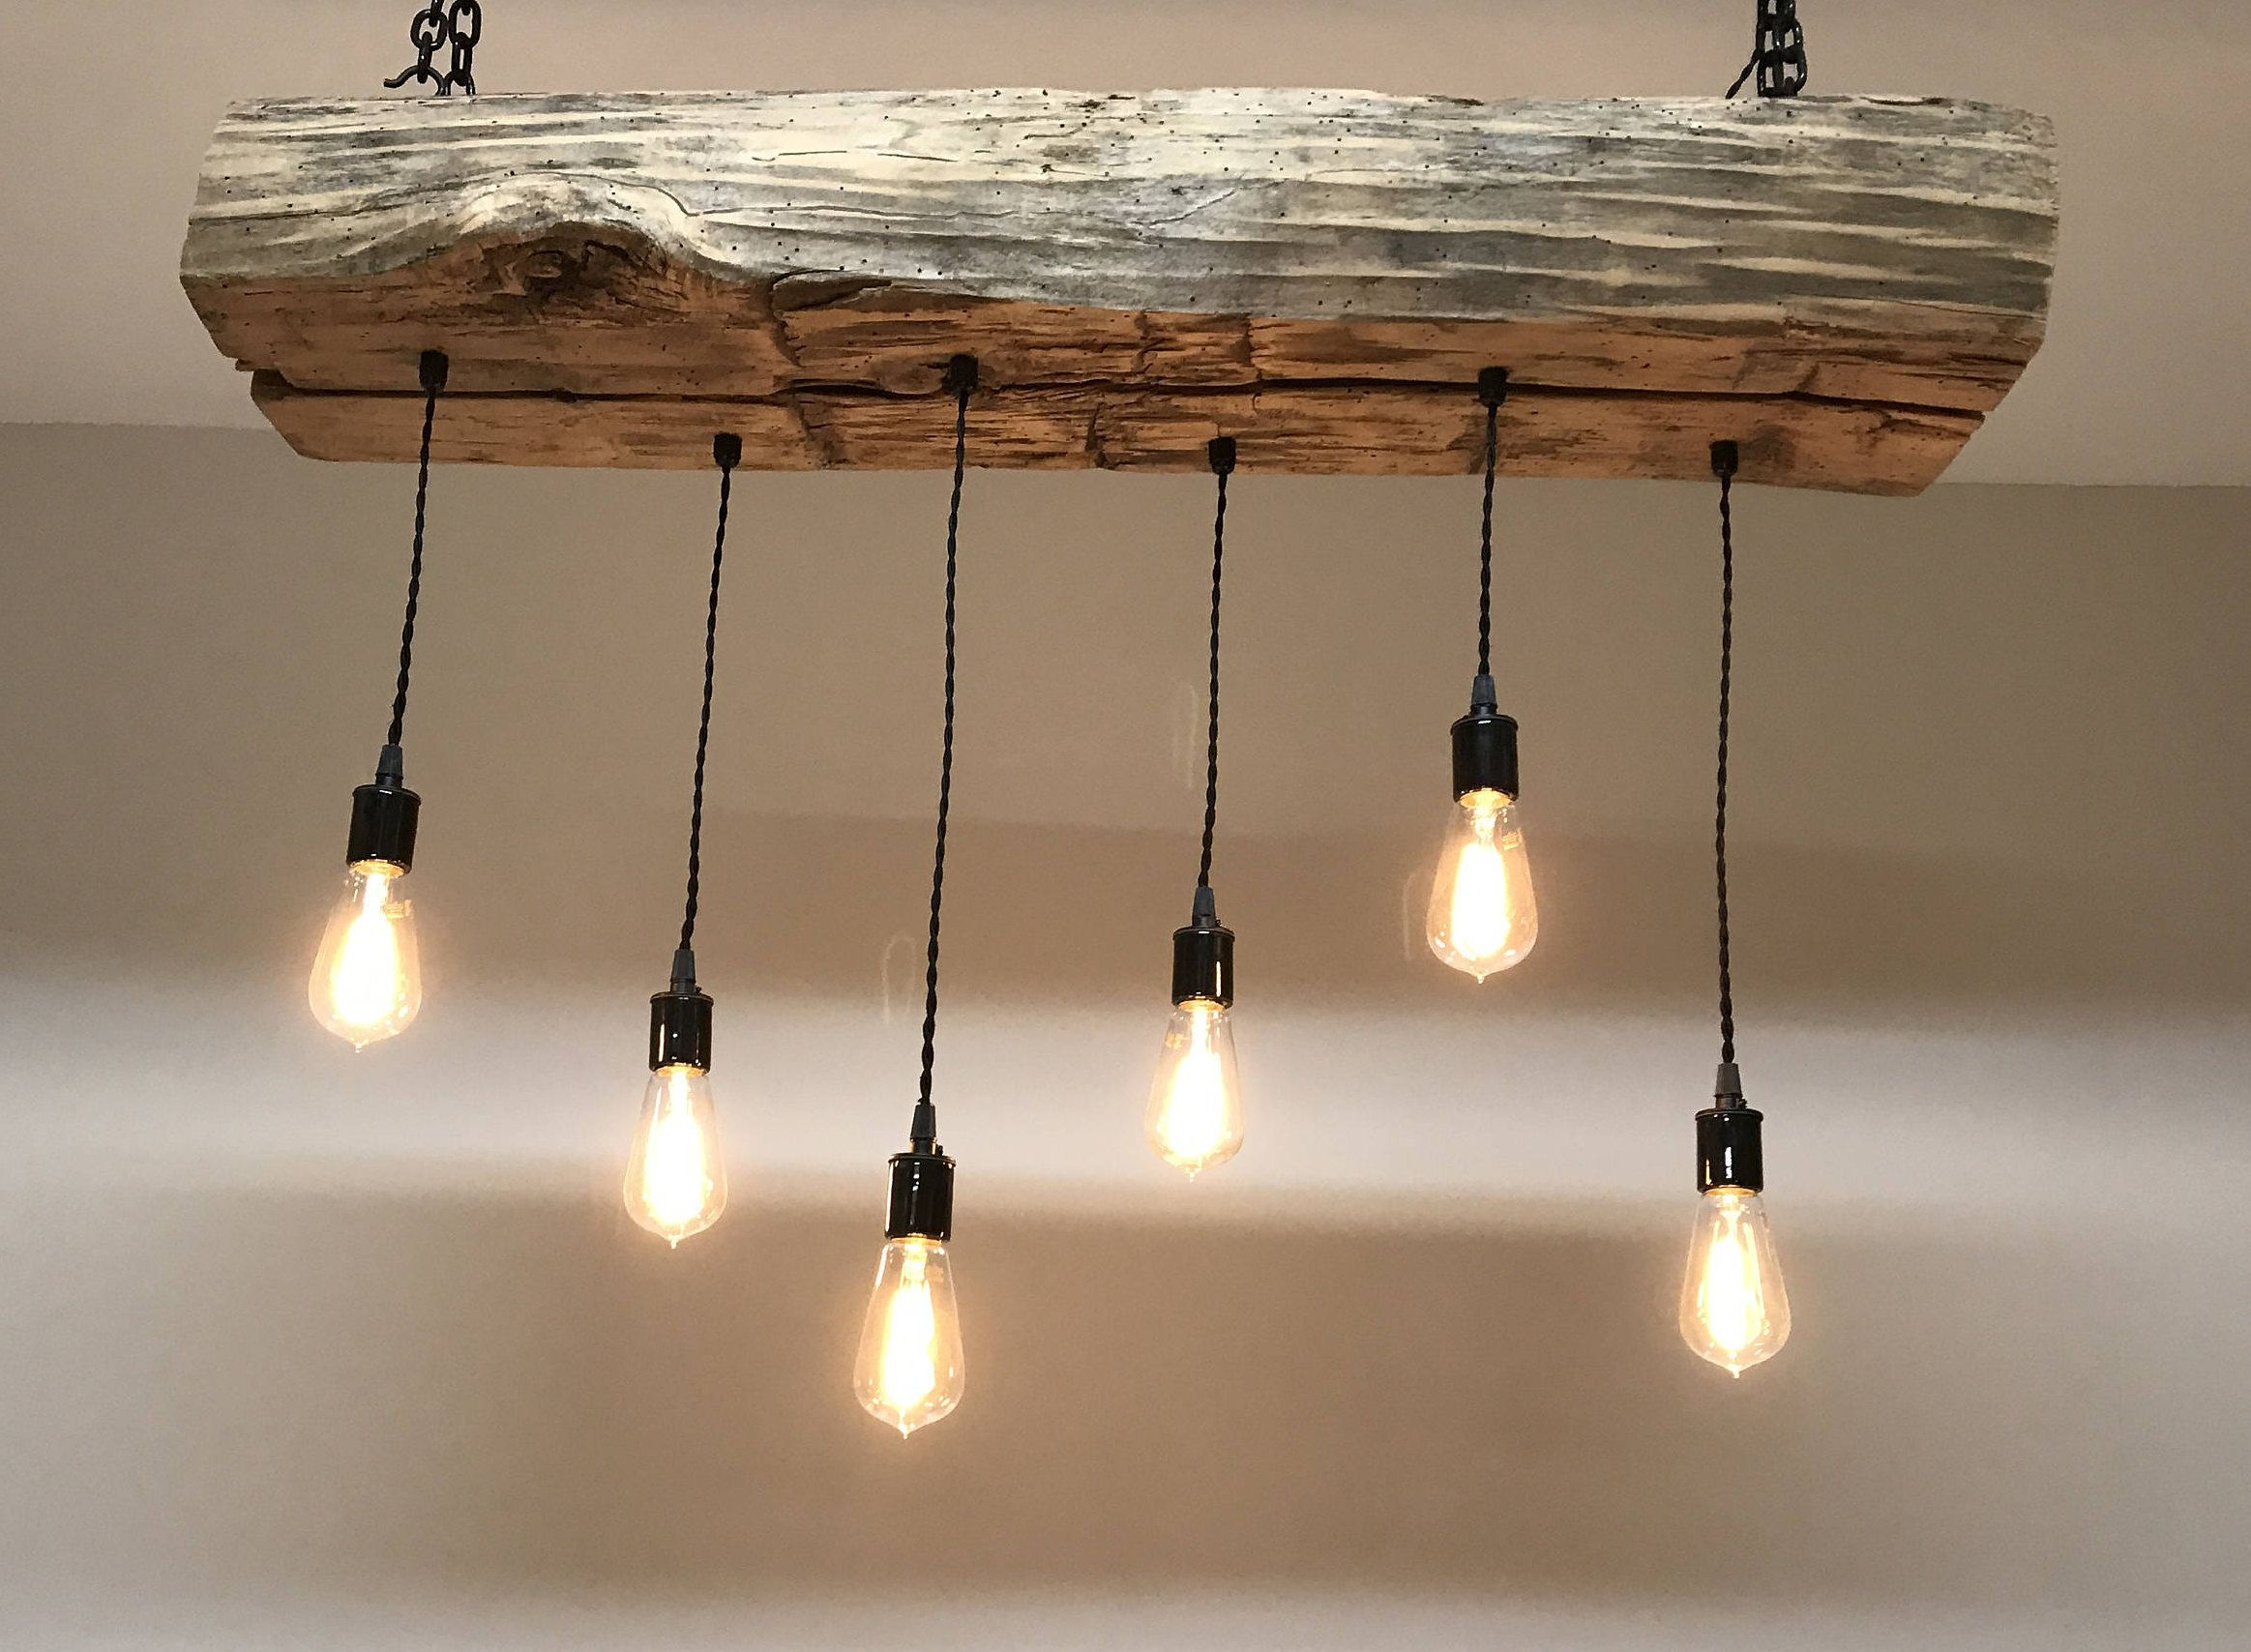 Reclaimed Barn Sleeper Beam Wood Light Fixture With Led Edison Pendant Lights Rustic Farmhouse Chandelier Lighting By 7mwoodworking On Etsy